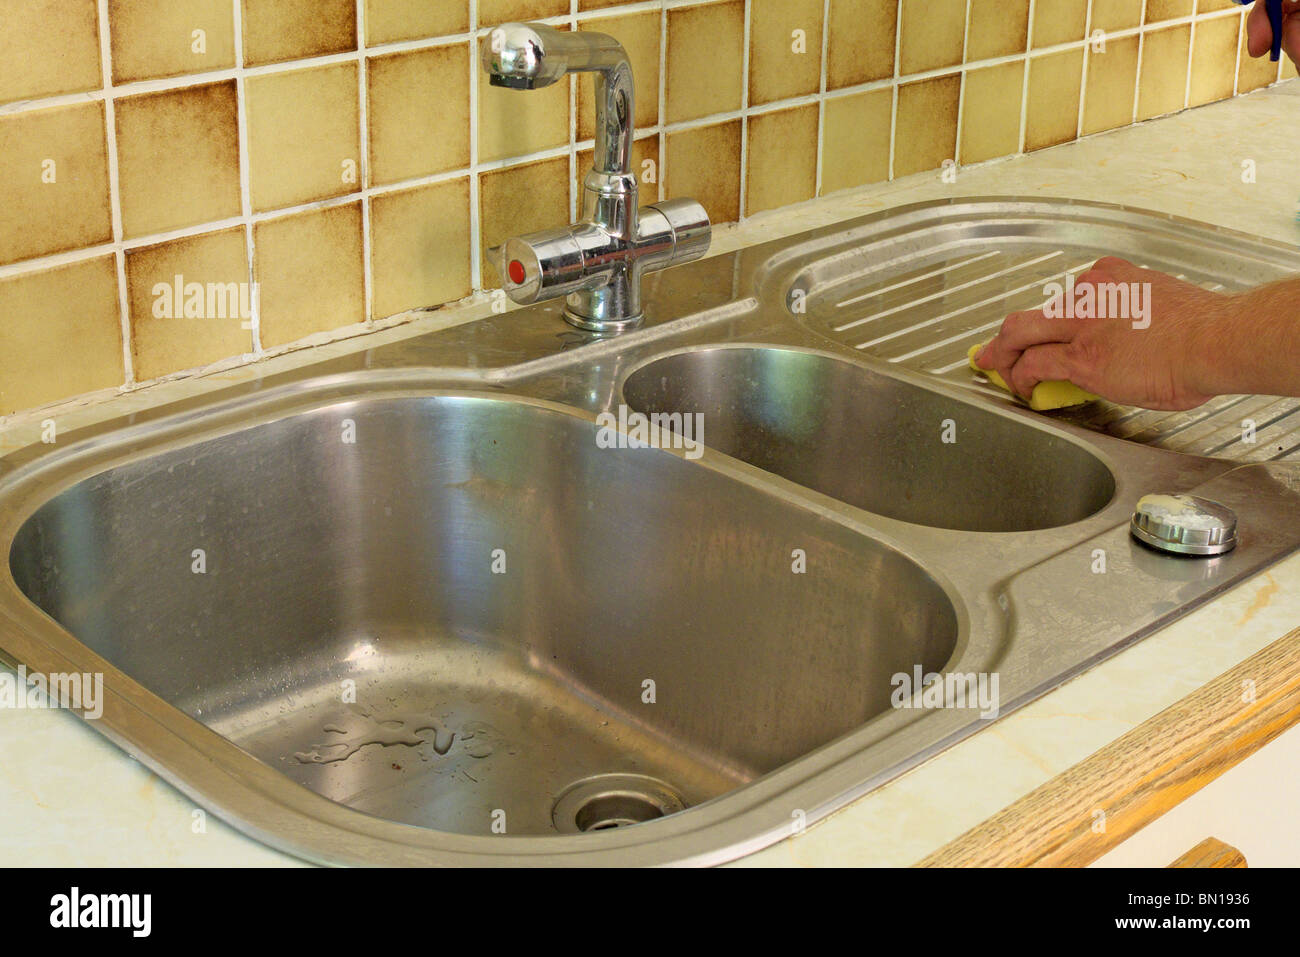 https www alamy com stock photo man cleaning stainless steel kitchen sink model released 30147242 html